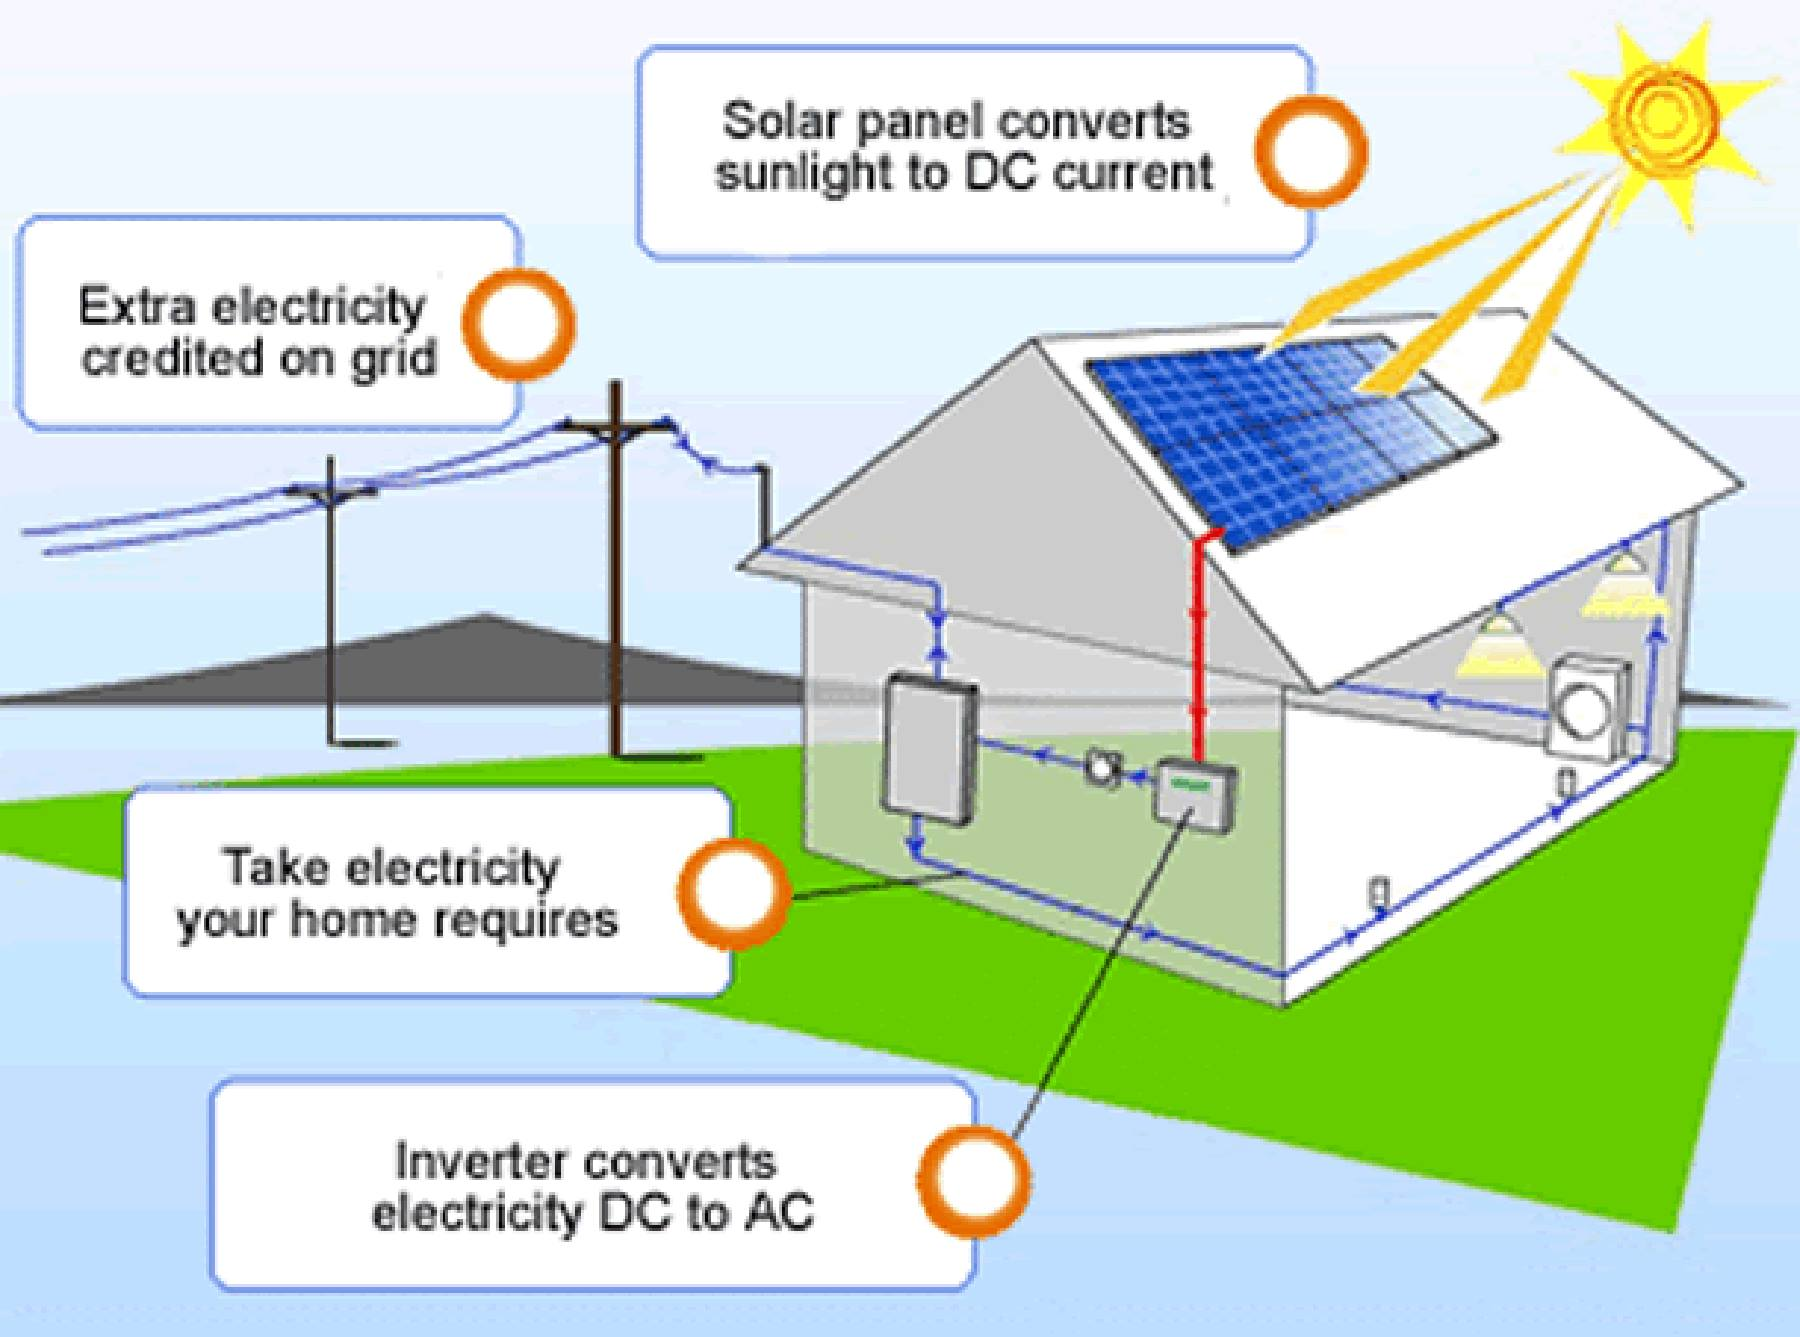 solar power diagram how it works yamaha grizzly 600 carburetor allcities and electric company yakima richland